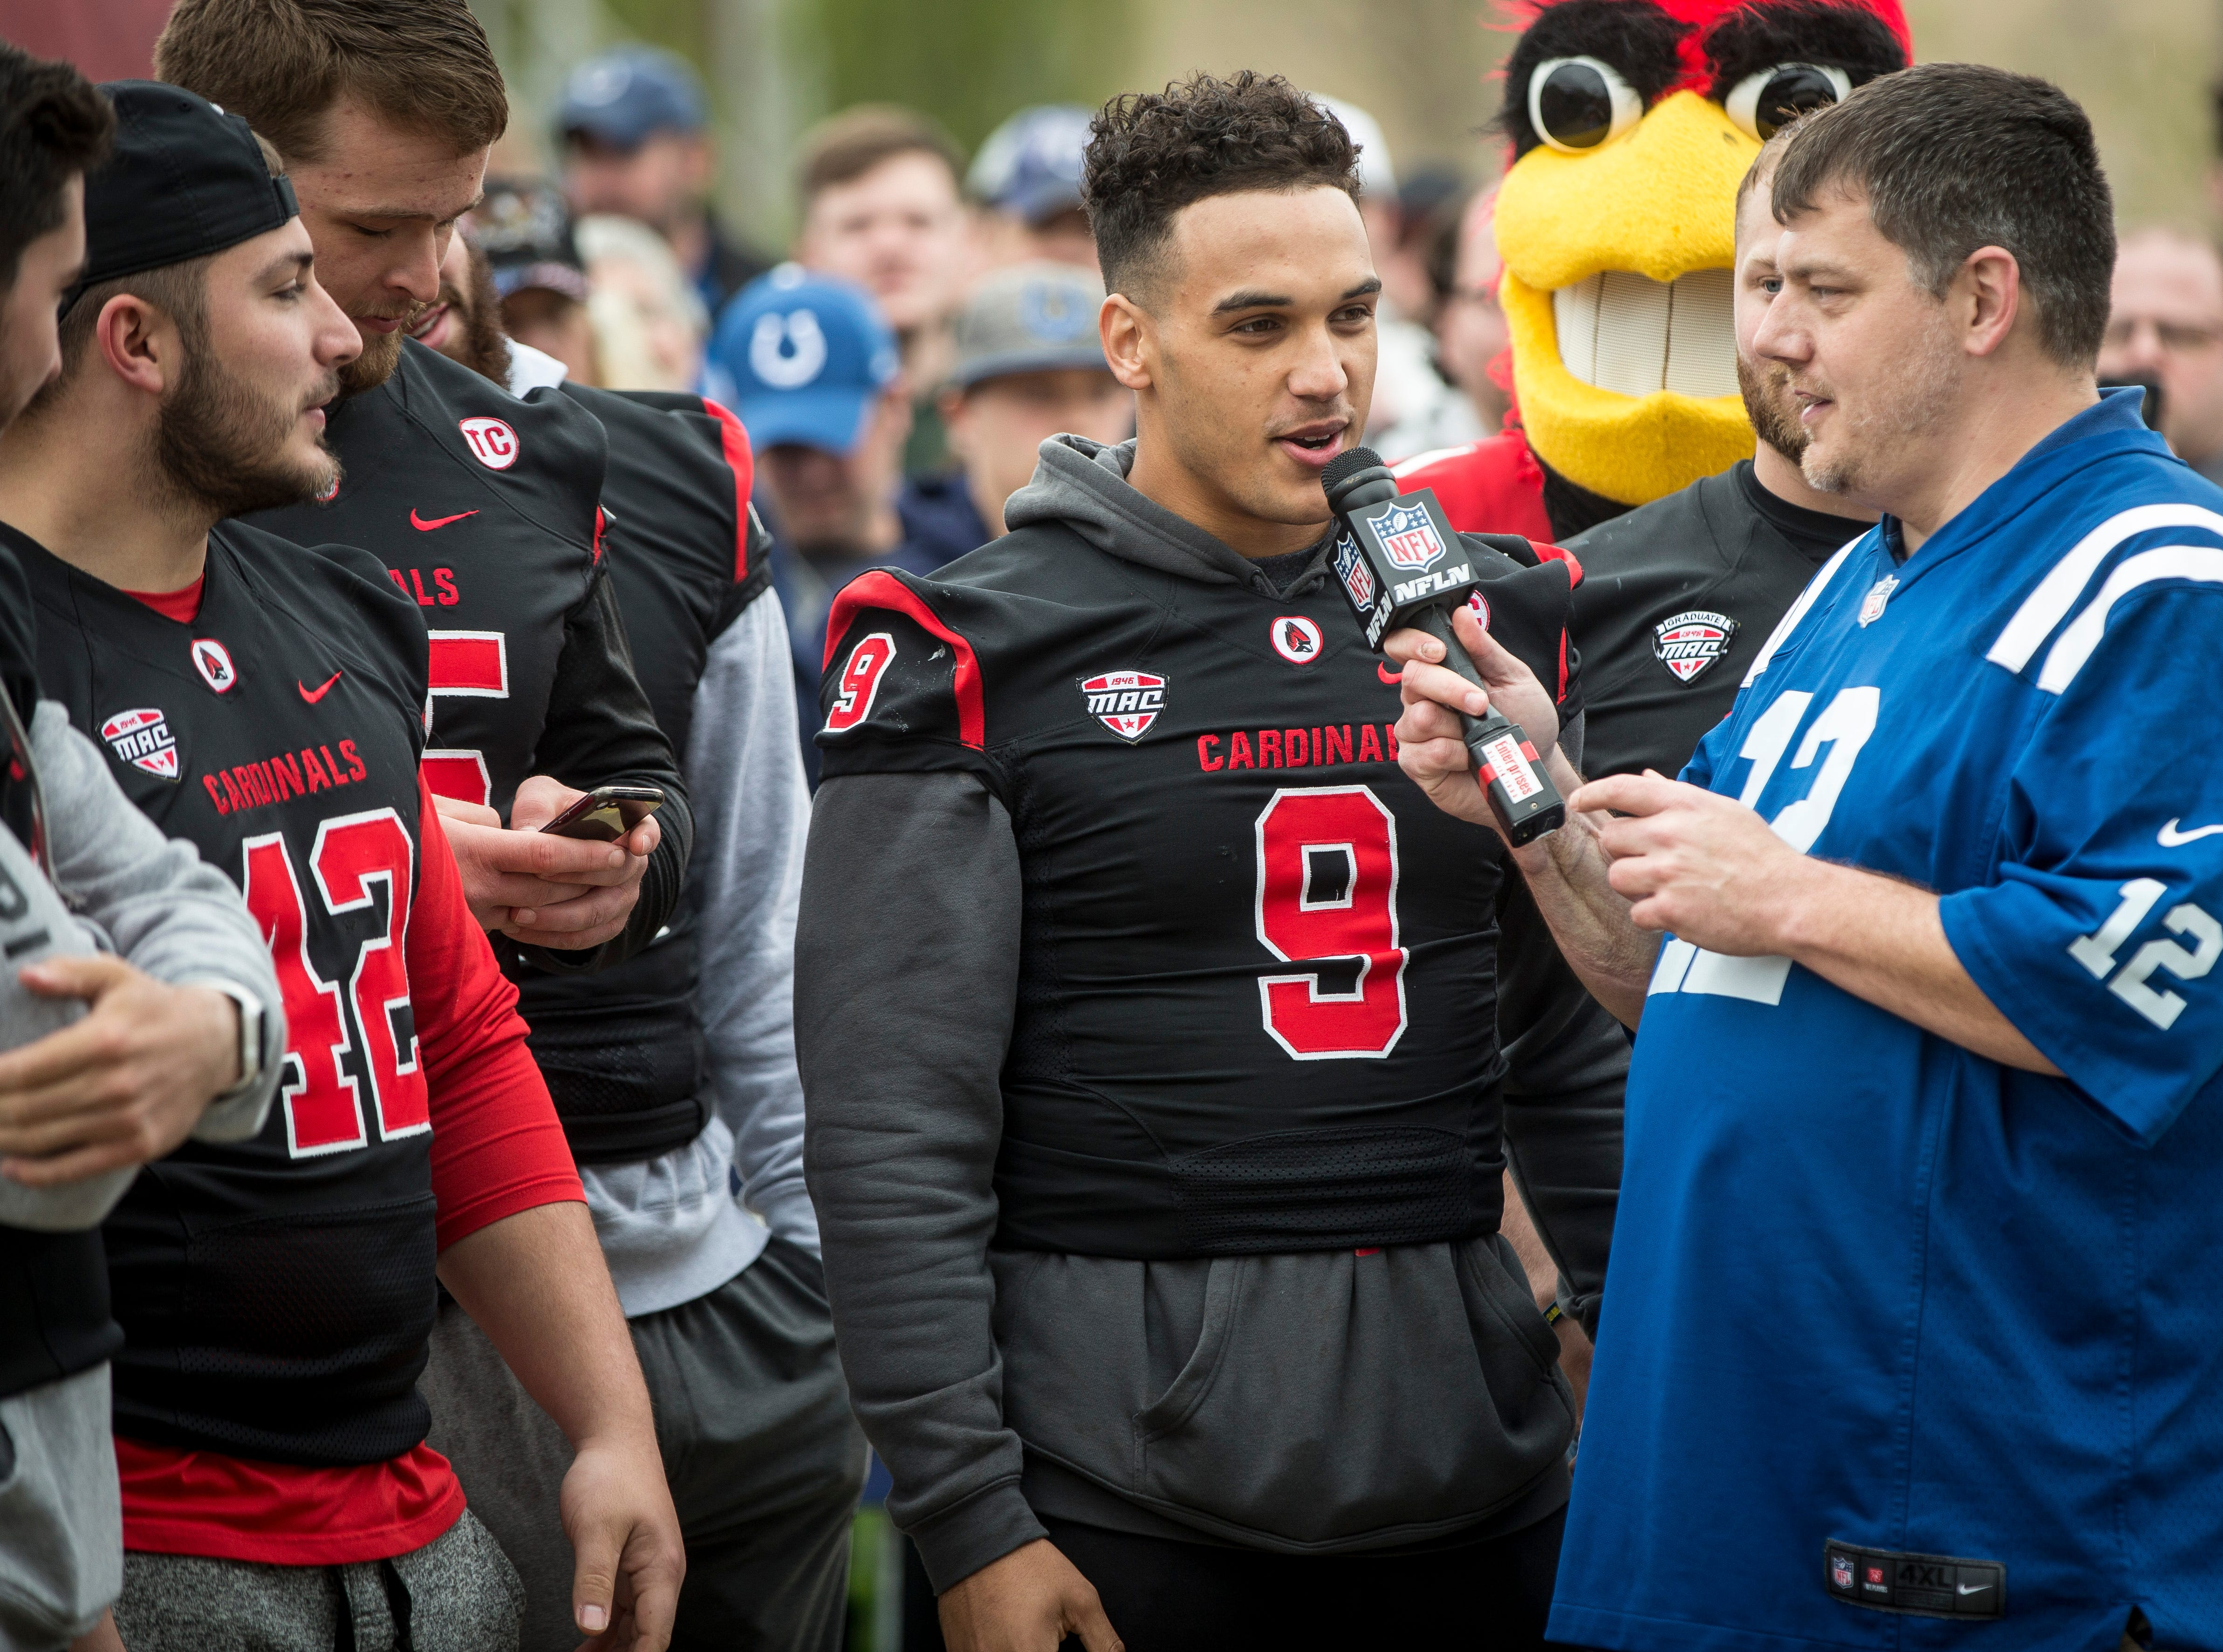 Ball State's football team got a chance to announce a second draft pick live from Muncie. The team was able to announce the Baltimore Ravens pick on live TV.